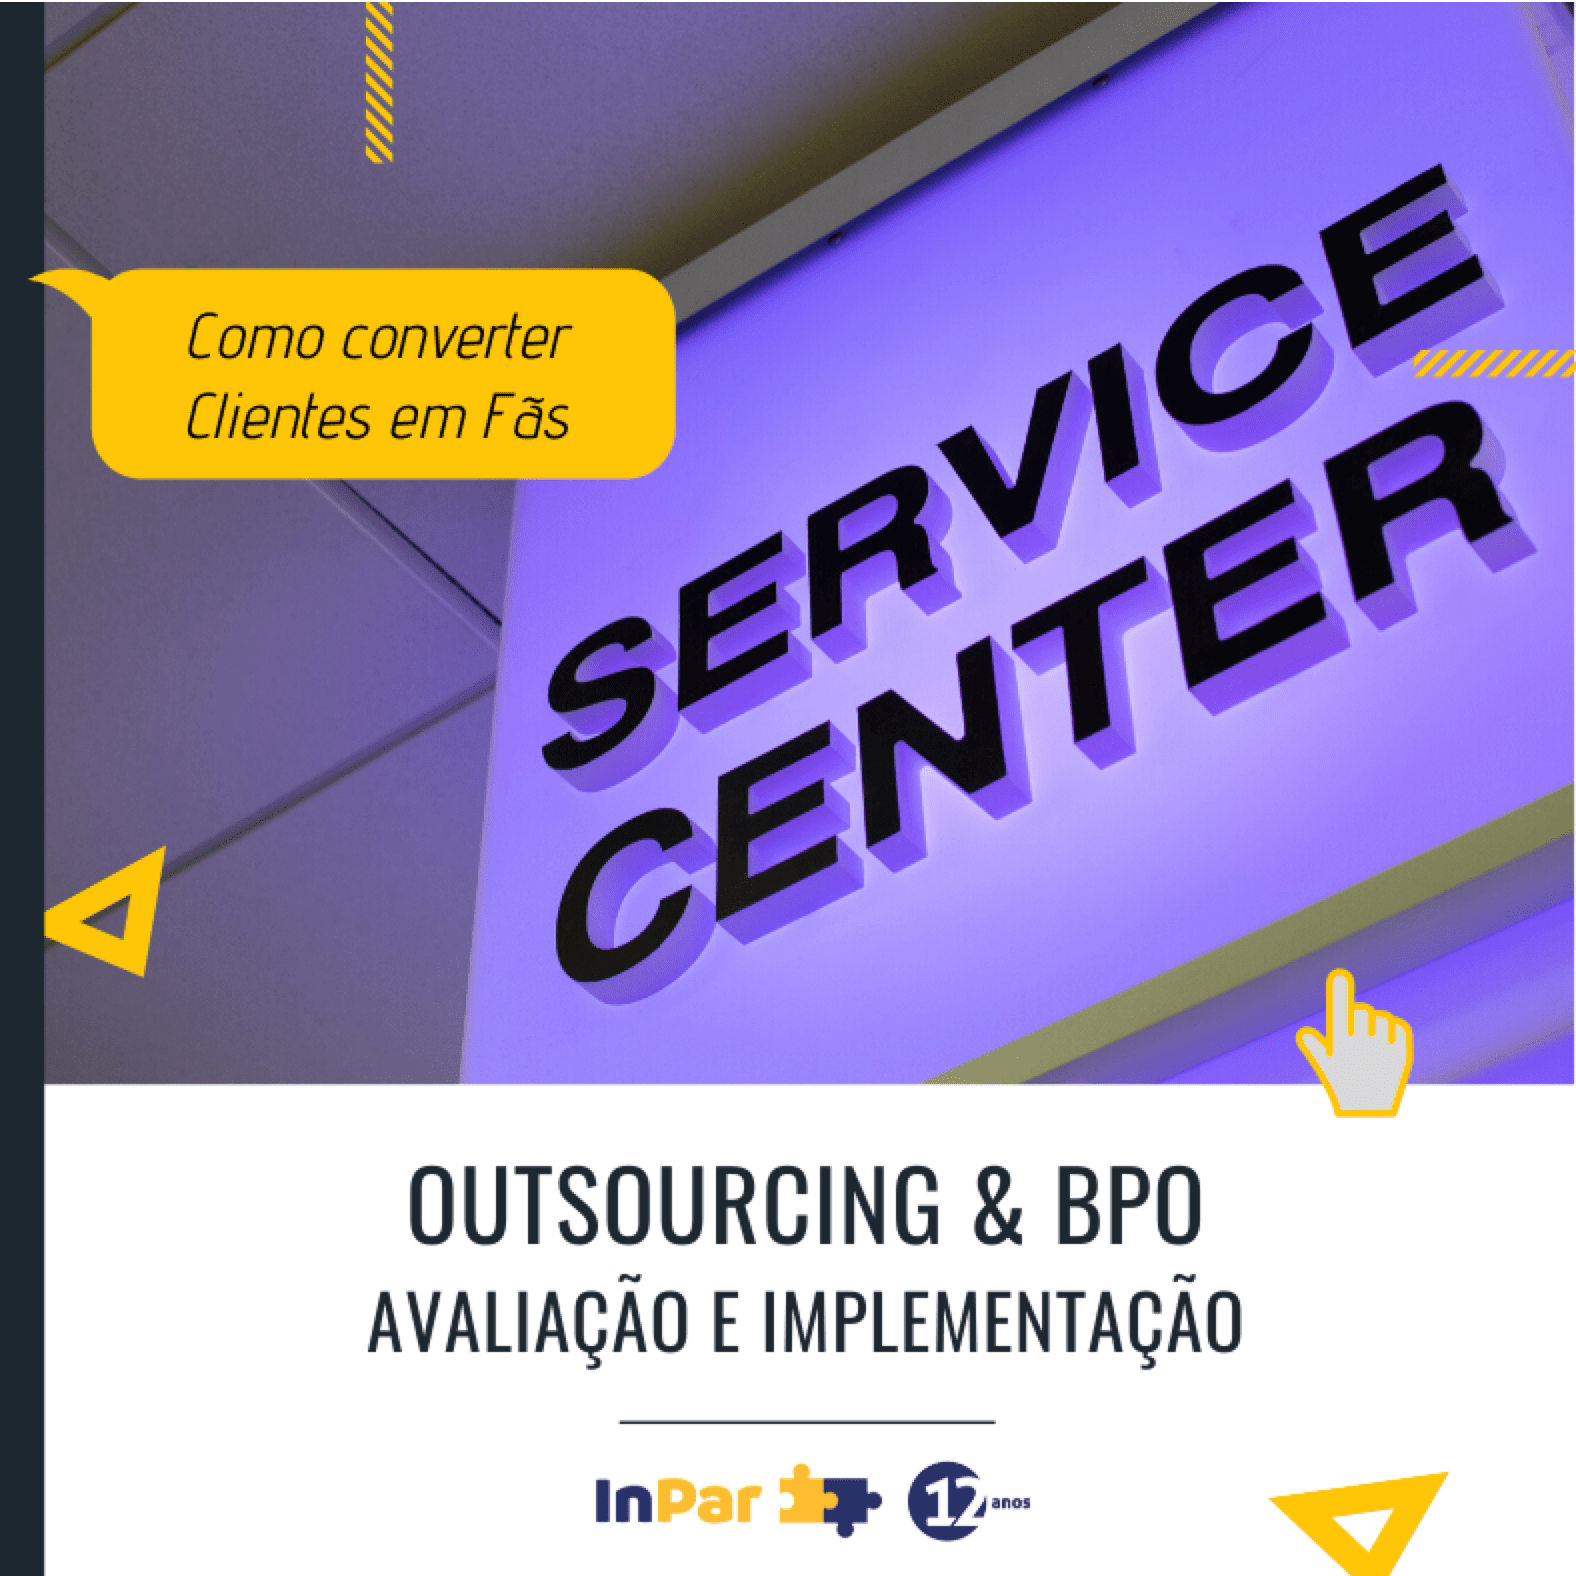 Outsourcing & BPOs